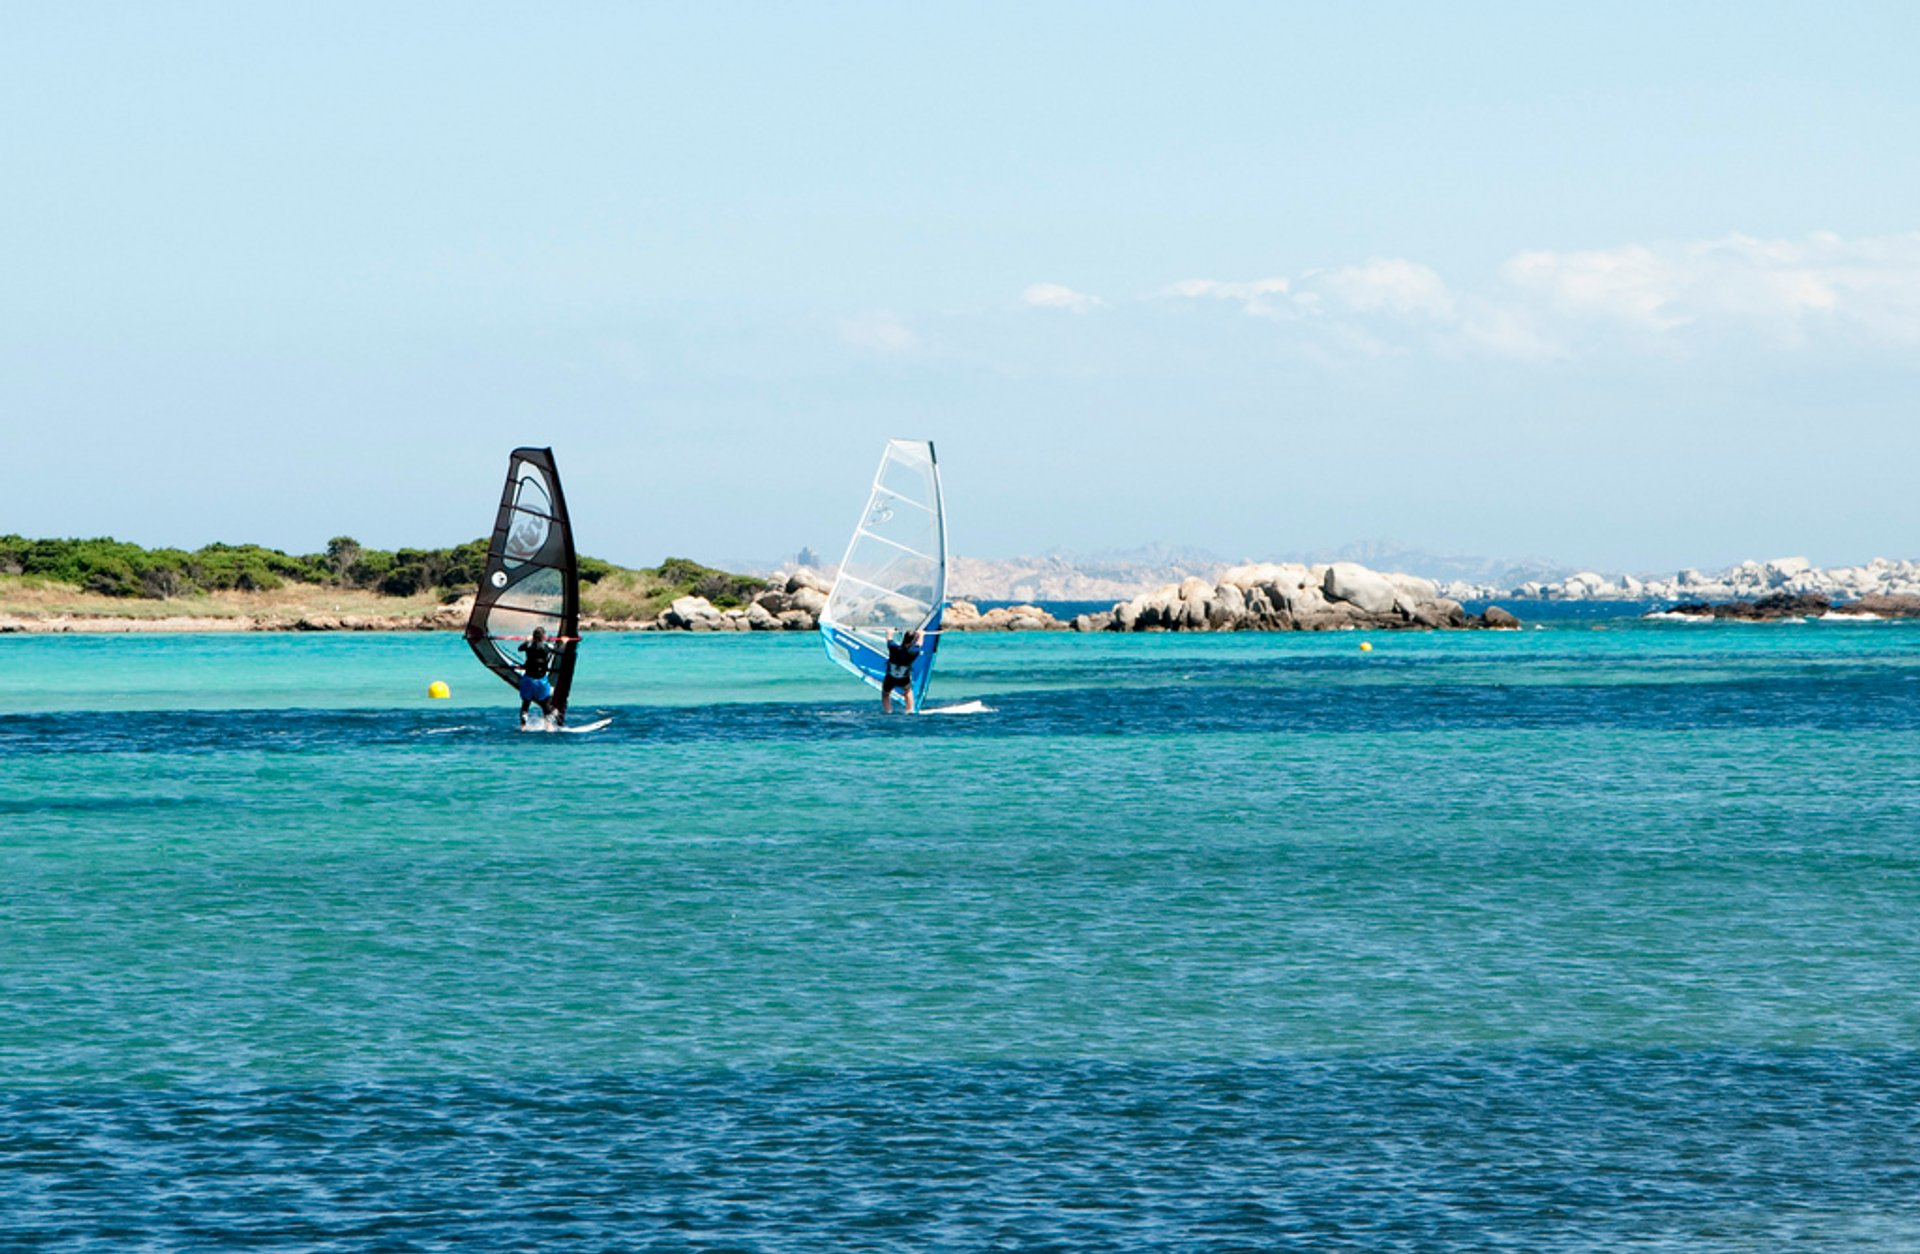 Kite and Windsurfing in Corsica - Best Season 2020